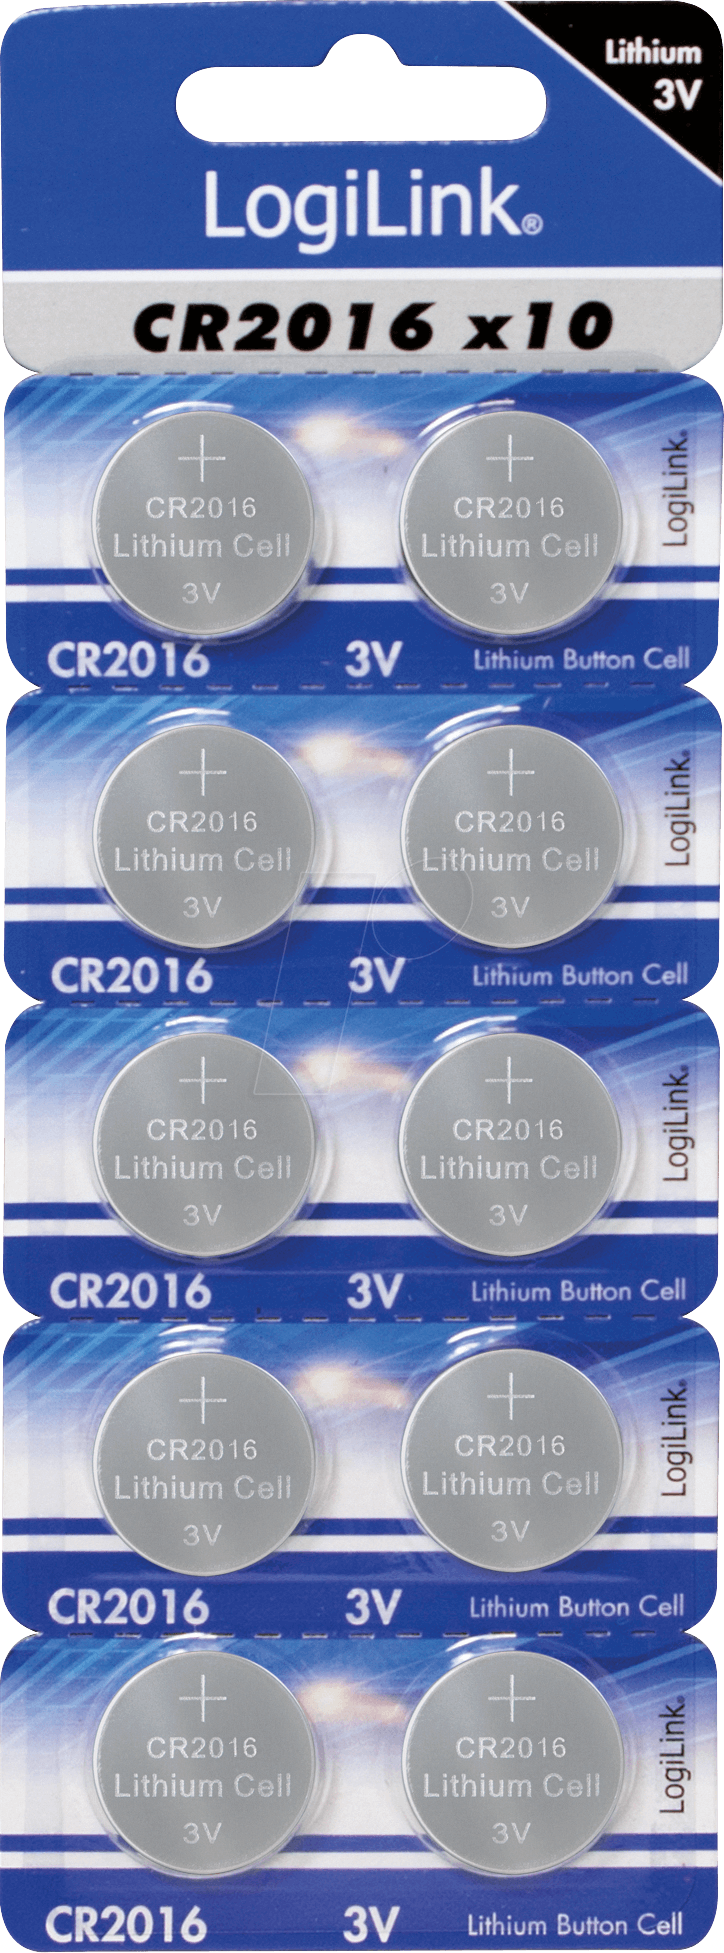 LOGILINK CR2016 LITHIUM BUTTON CELL 2PCK